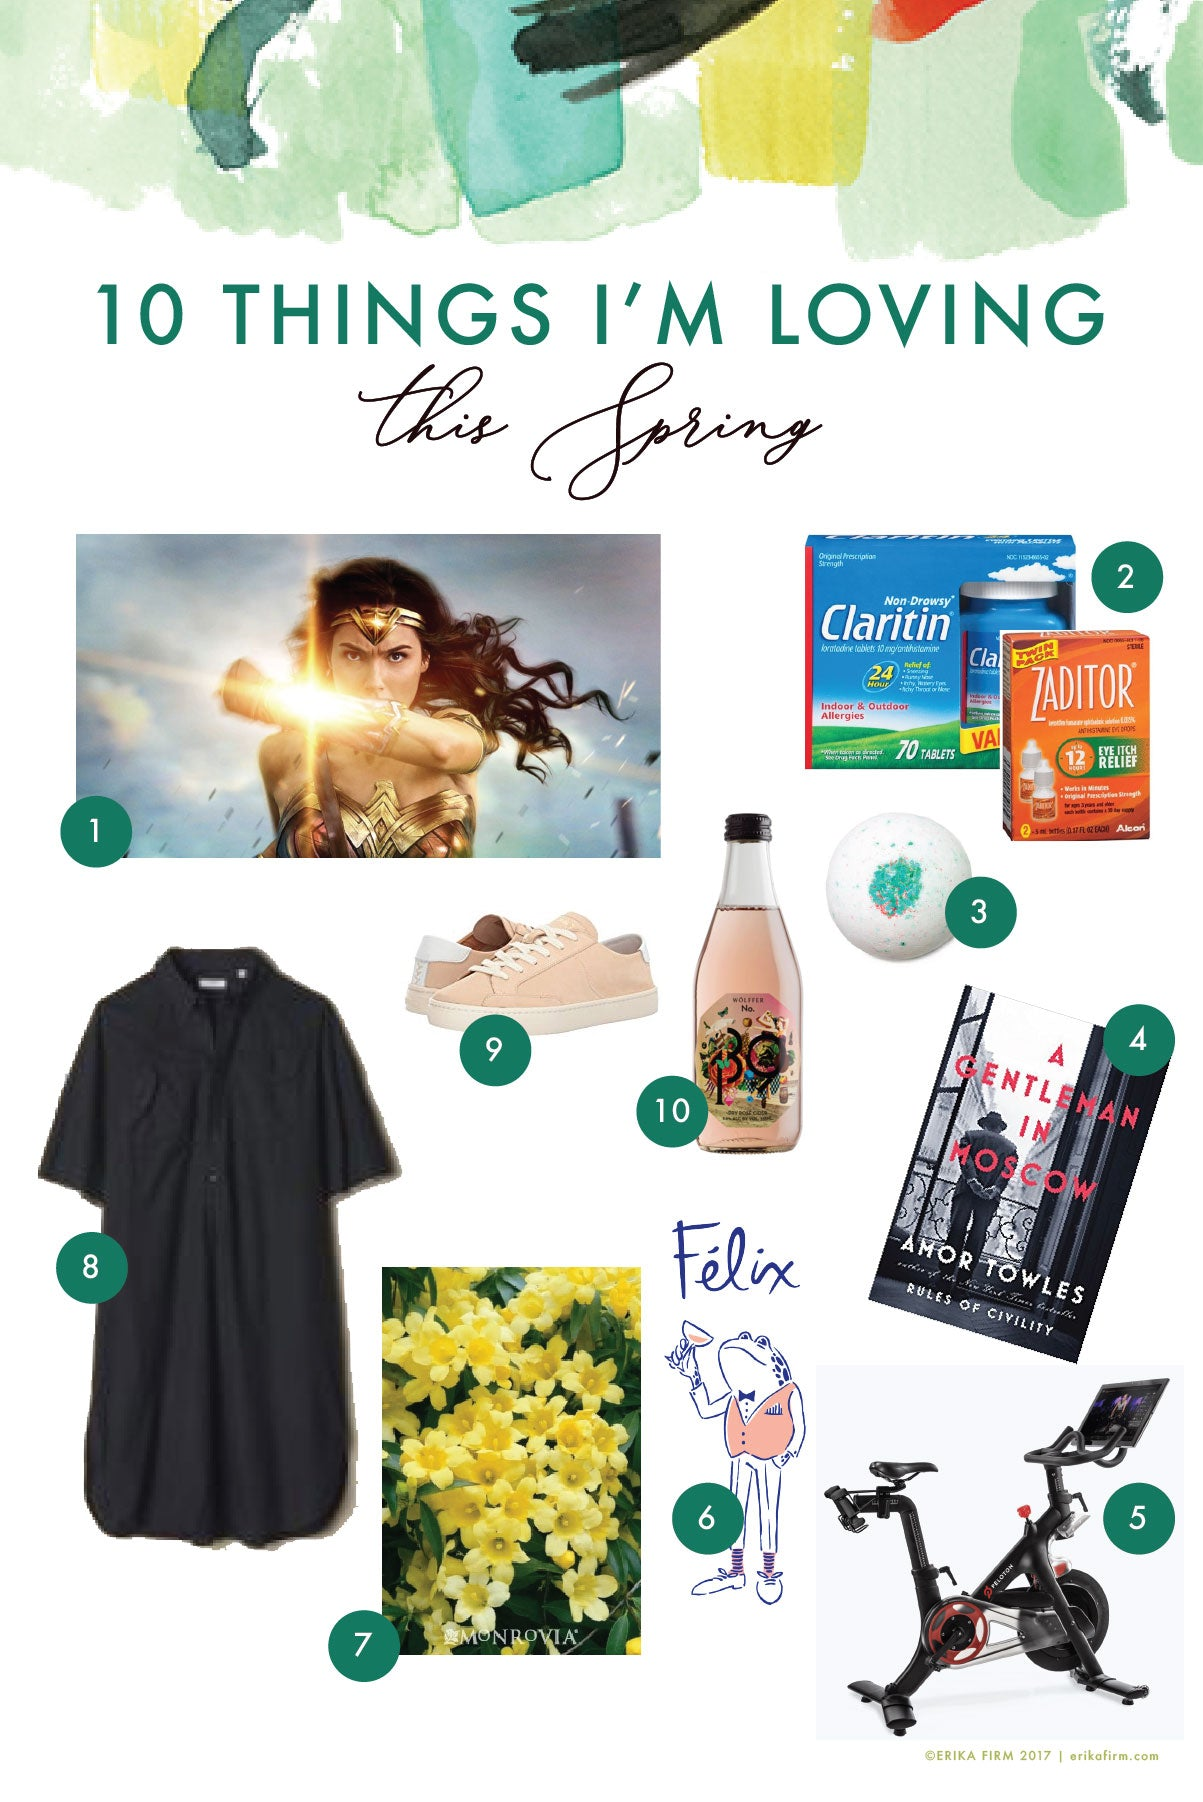 10 Things I Love for Spring by Erika Firm